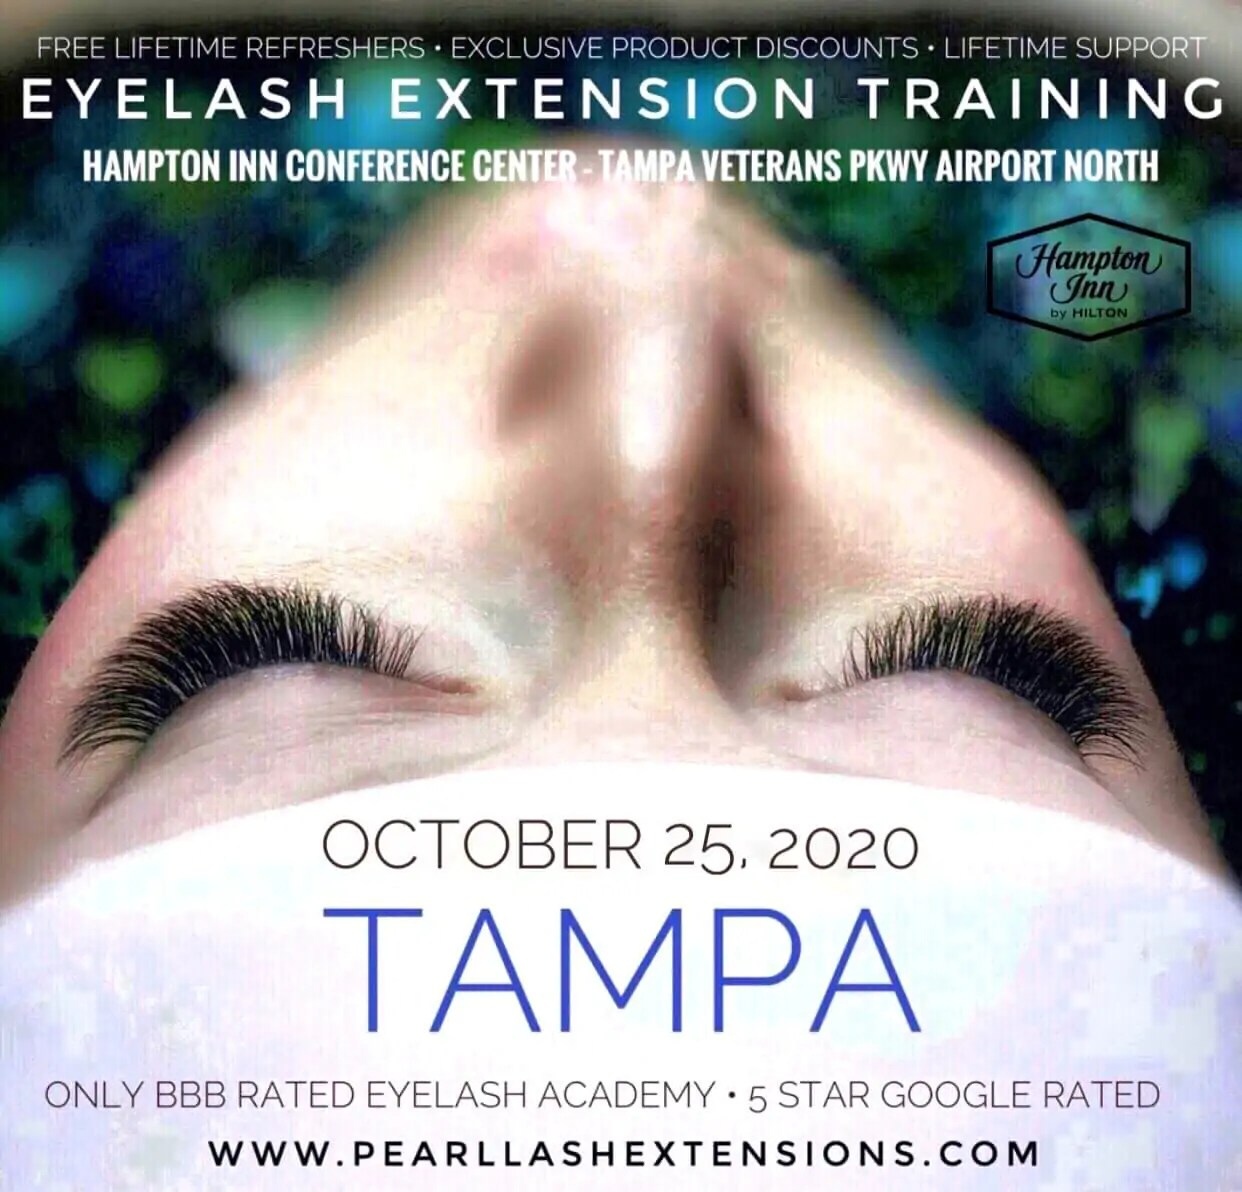 Classic Eyelash Extension Training Tampa by Pearl Lash